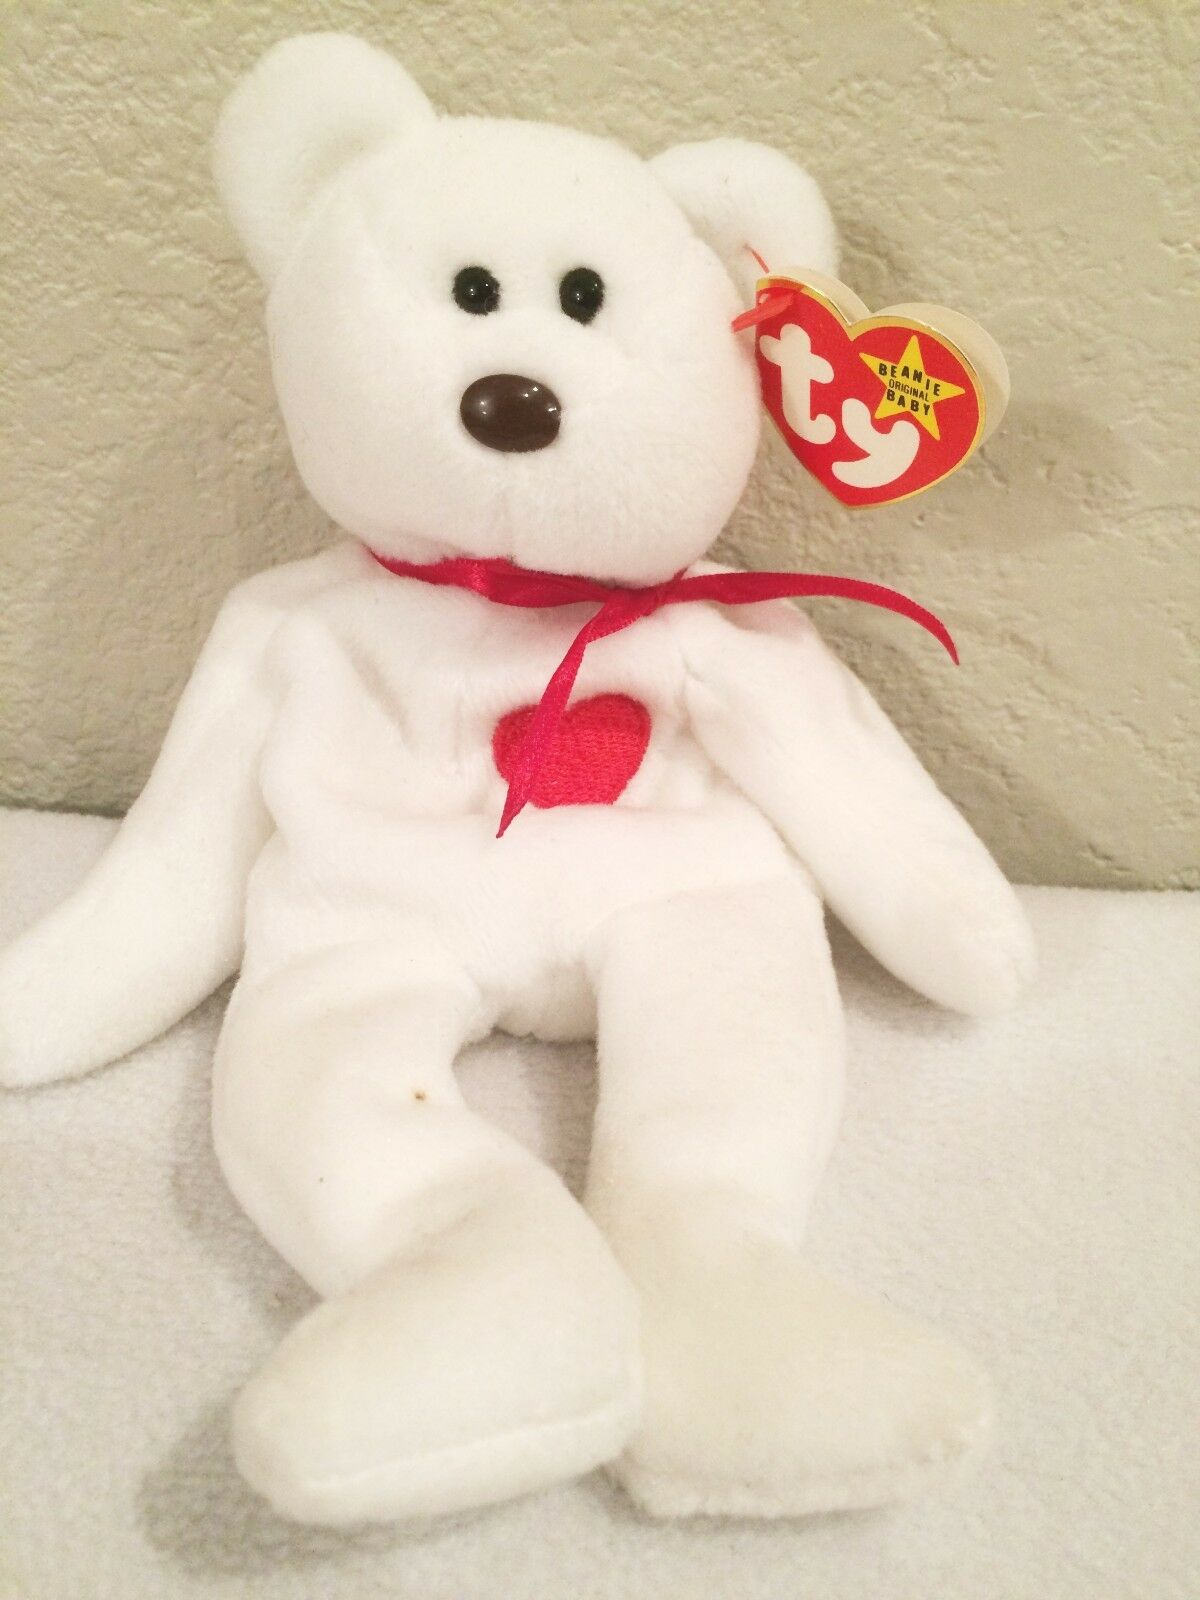 Valentino White BearTY original beanie baby RETIRED Errors misprints  1994 Rare